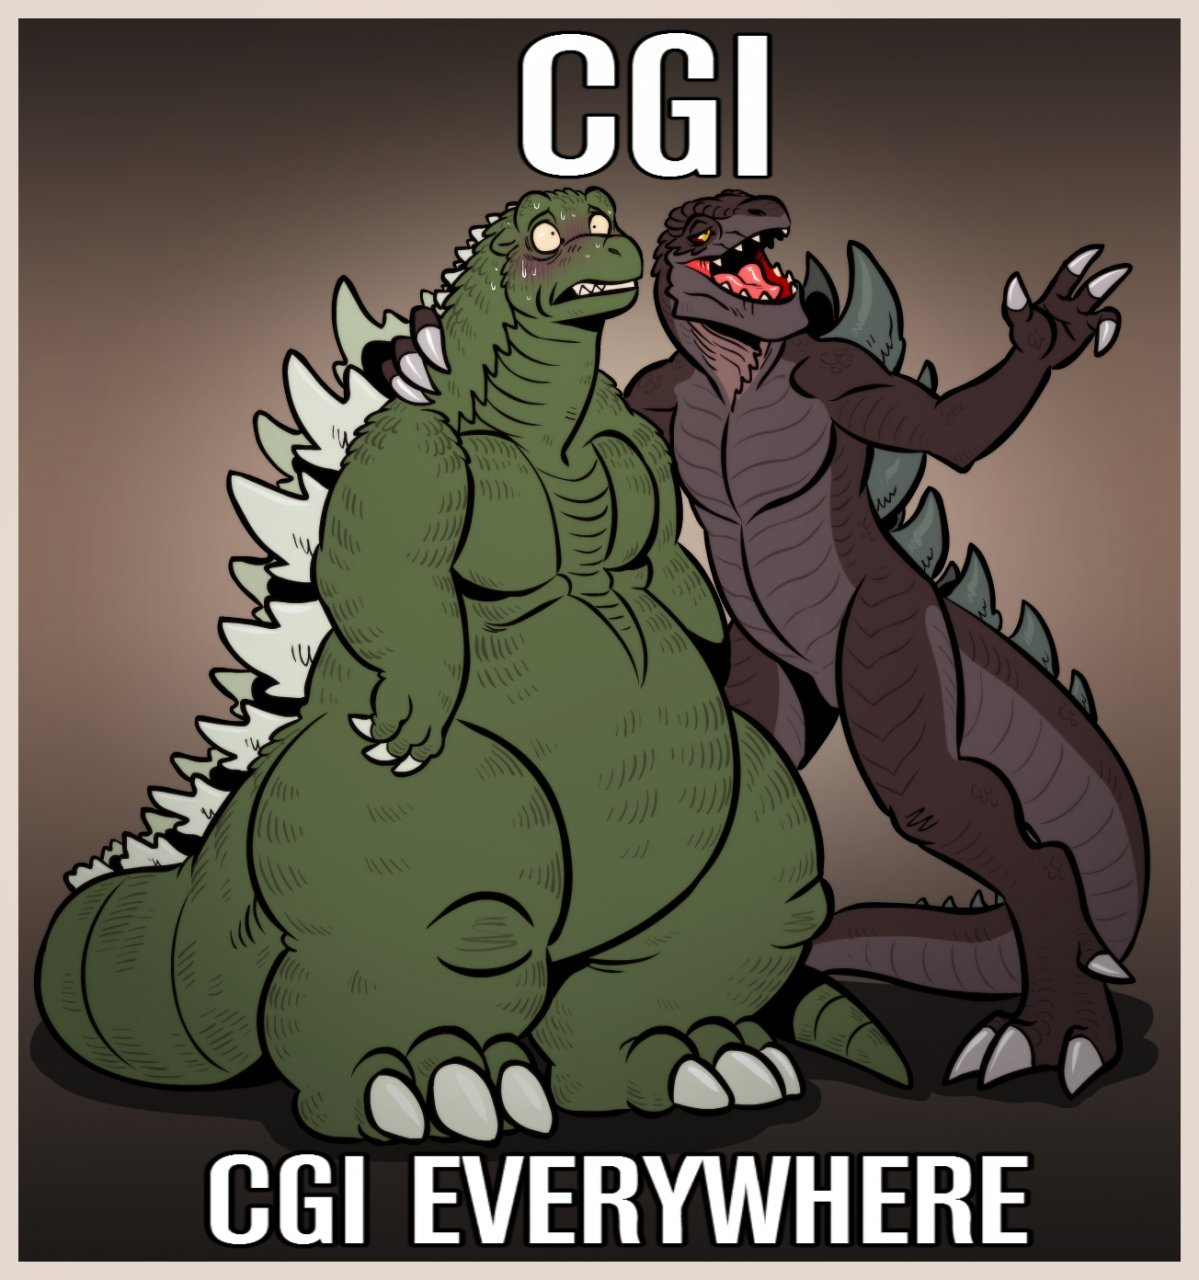 CGI IS EVERYWHERE MANG - meme